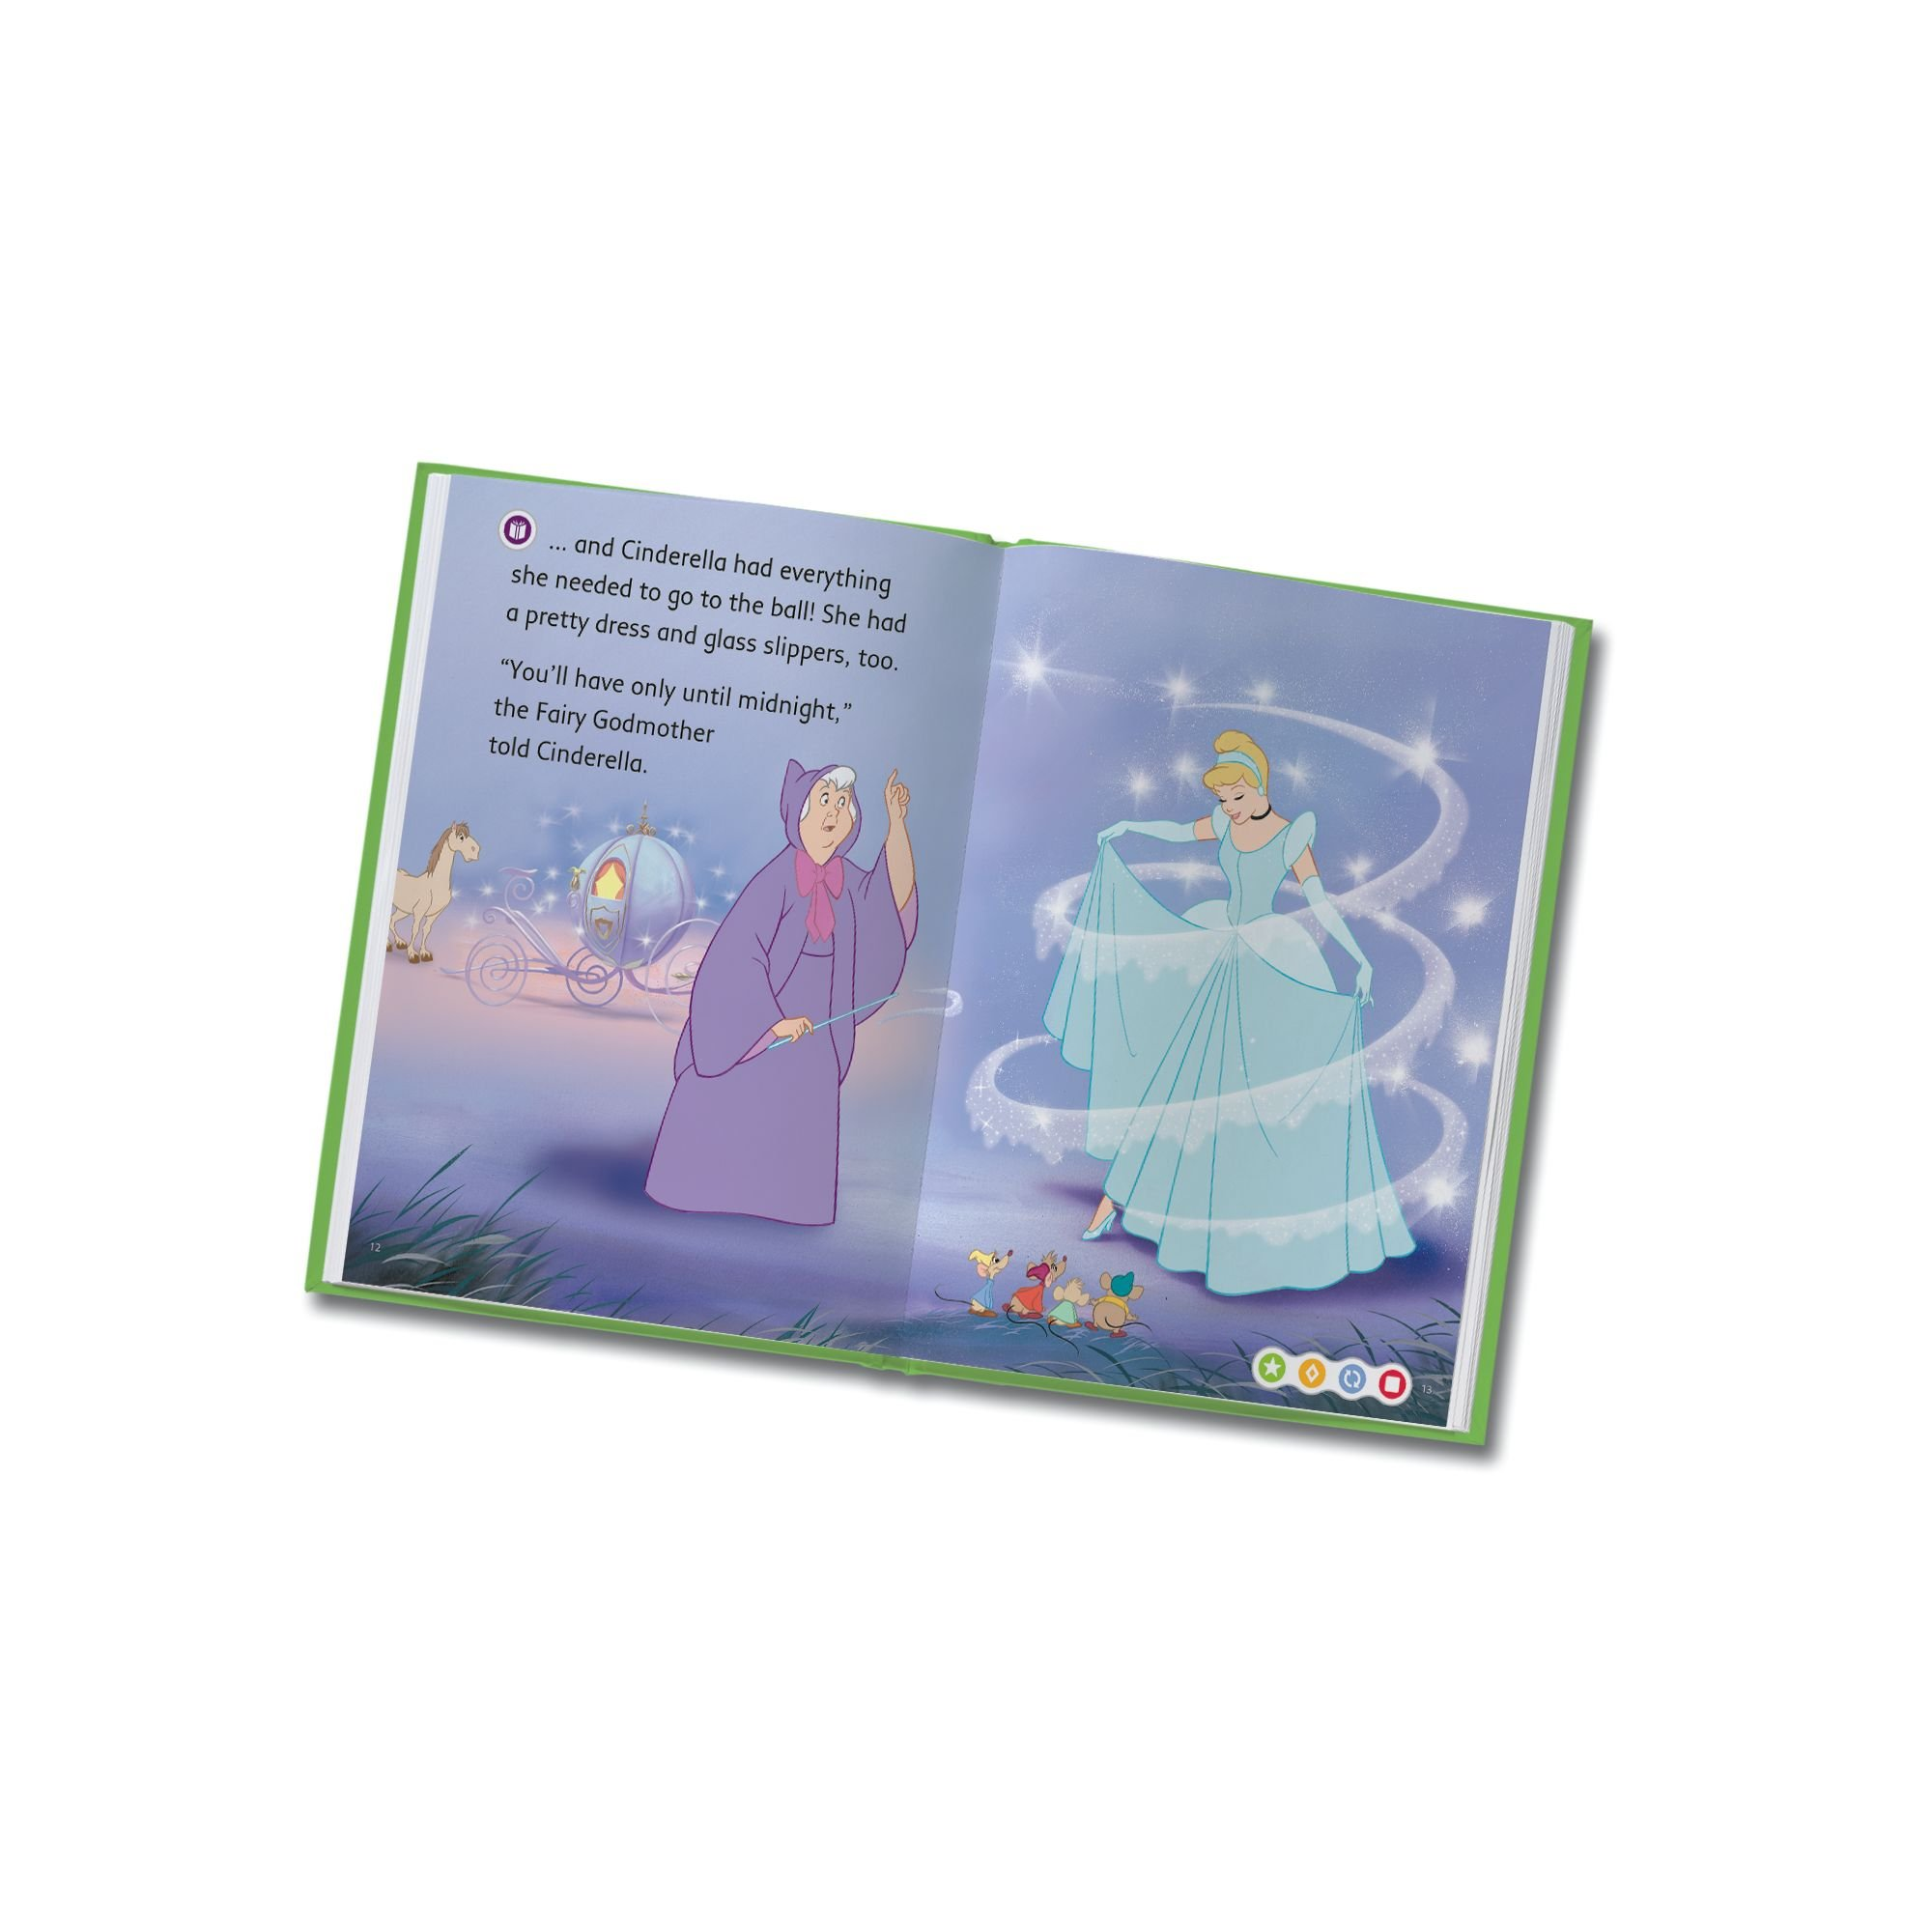 LeapFrog LeapReader Book: Disney Cinderella: The Heart That Believes (works with Tag) by LeapFrog (Image #5)